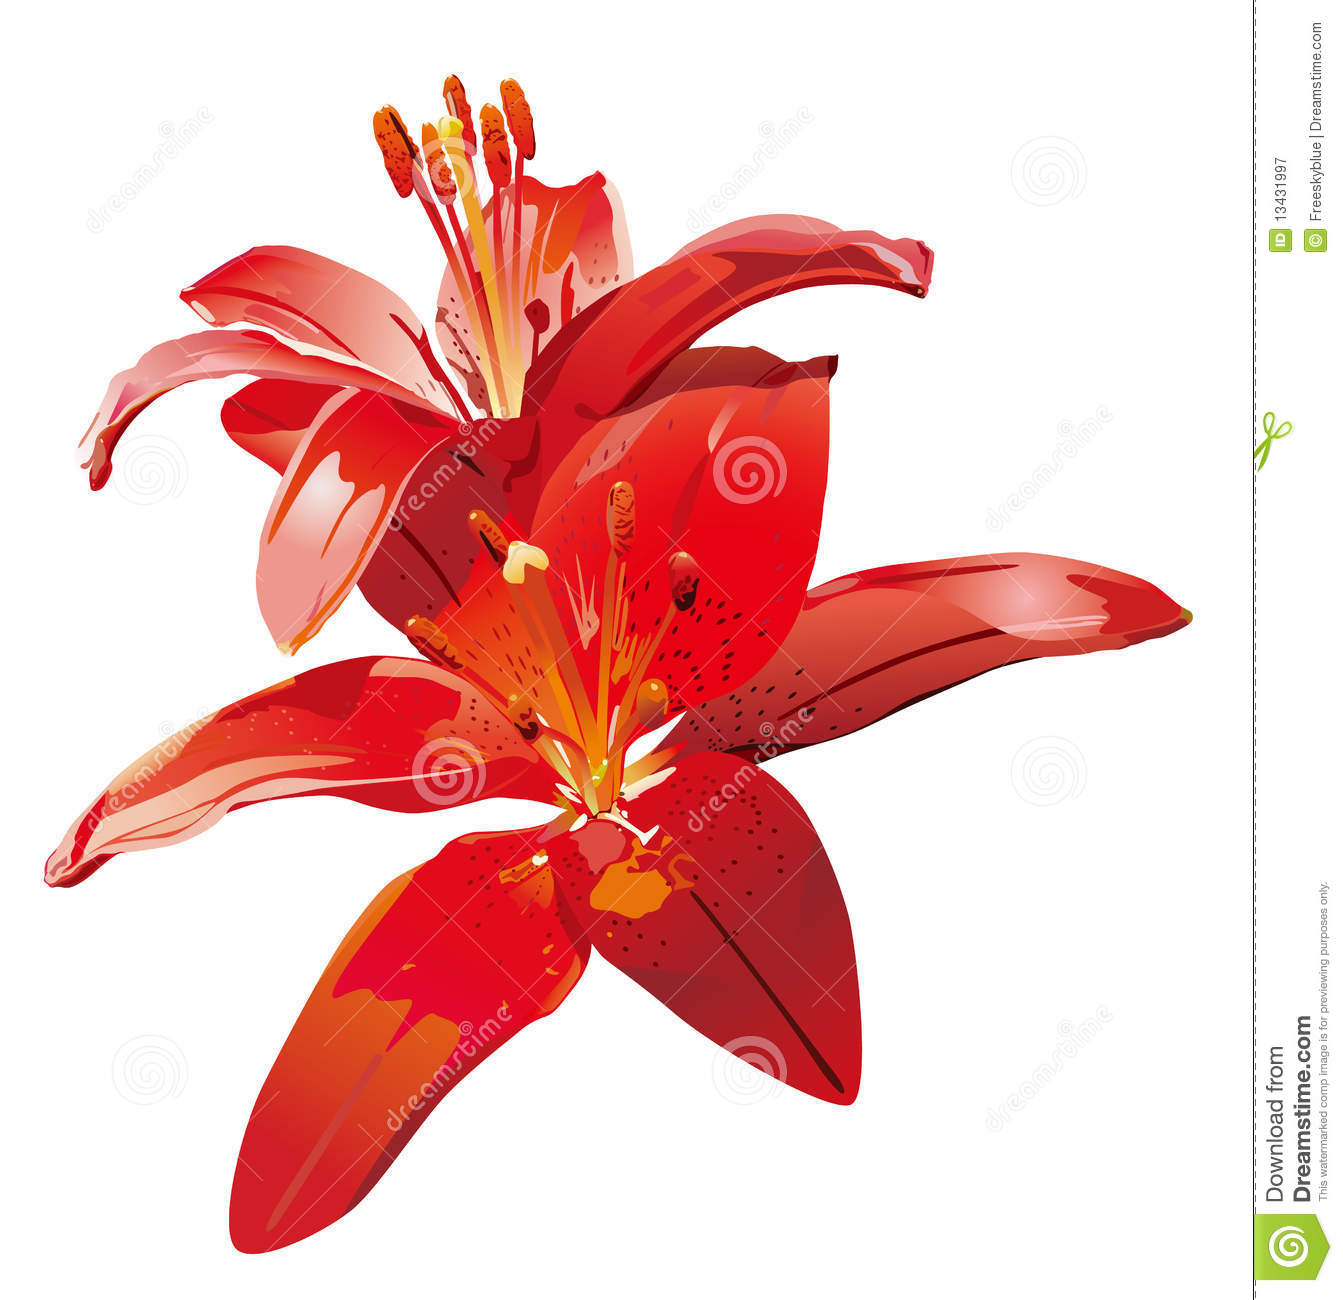 red lily flower stock illustration illustration of